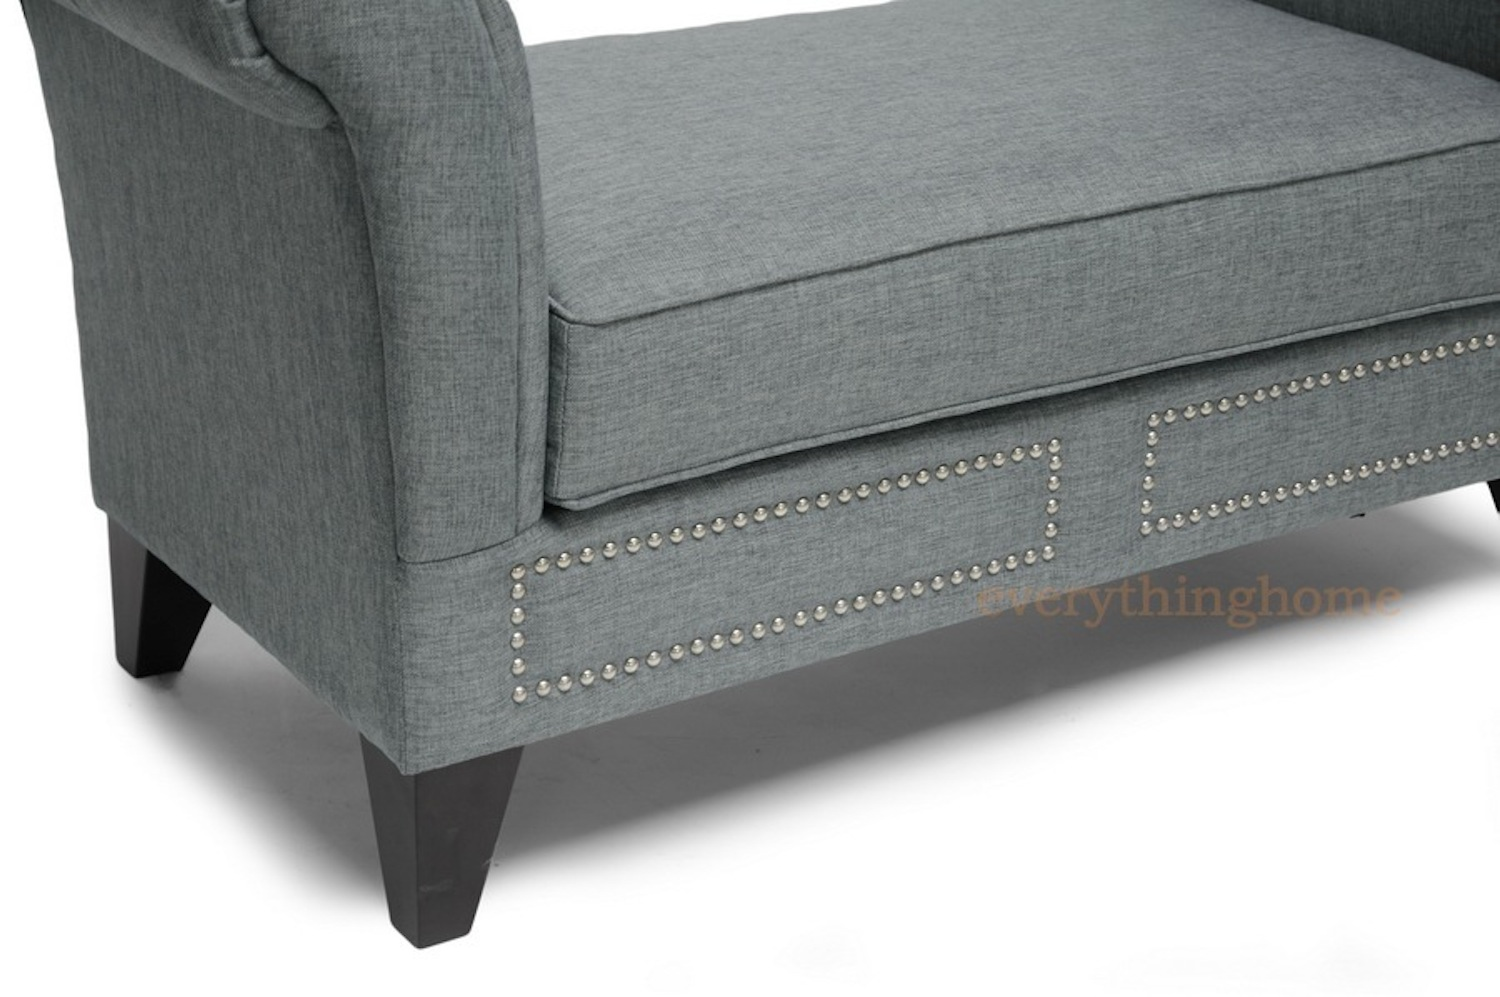 Modern Bedroom Bench Black White Faux Leather Gray Linen Scroll Arm Entry Way Bench